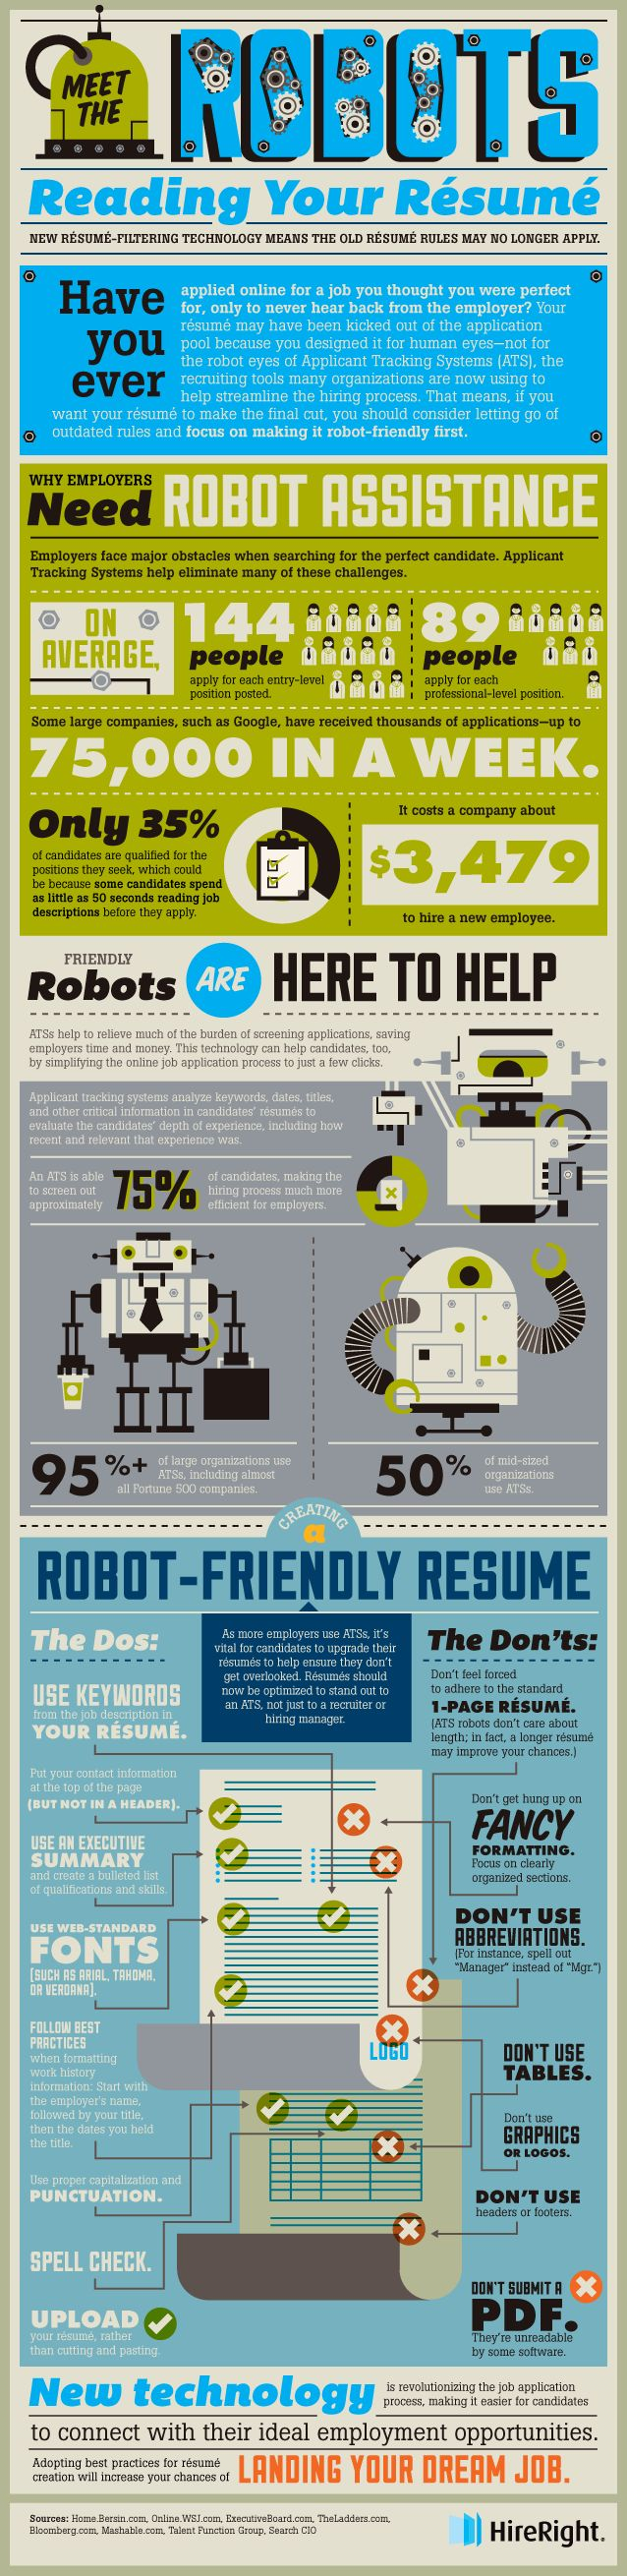 meet the robots reading your resume applicant tracking systems how to format resume for ats